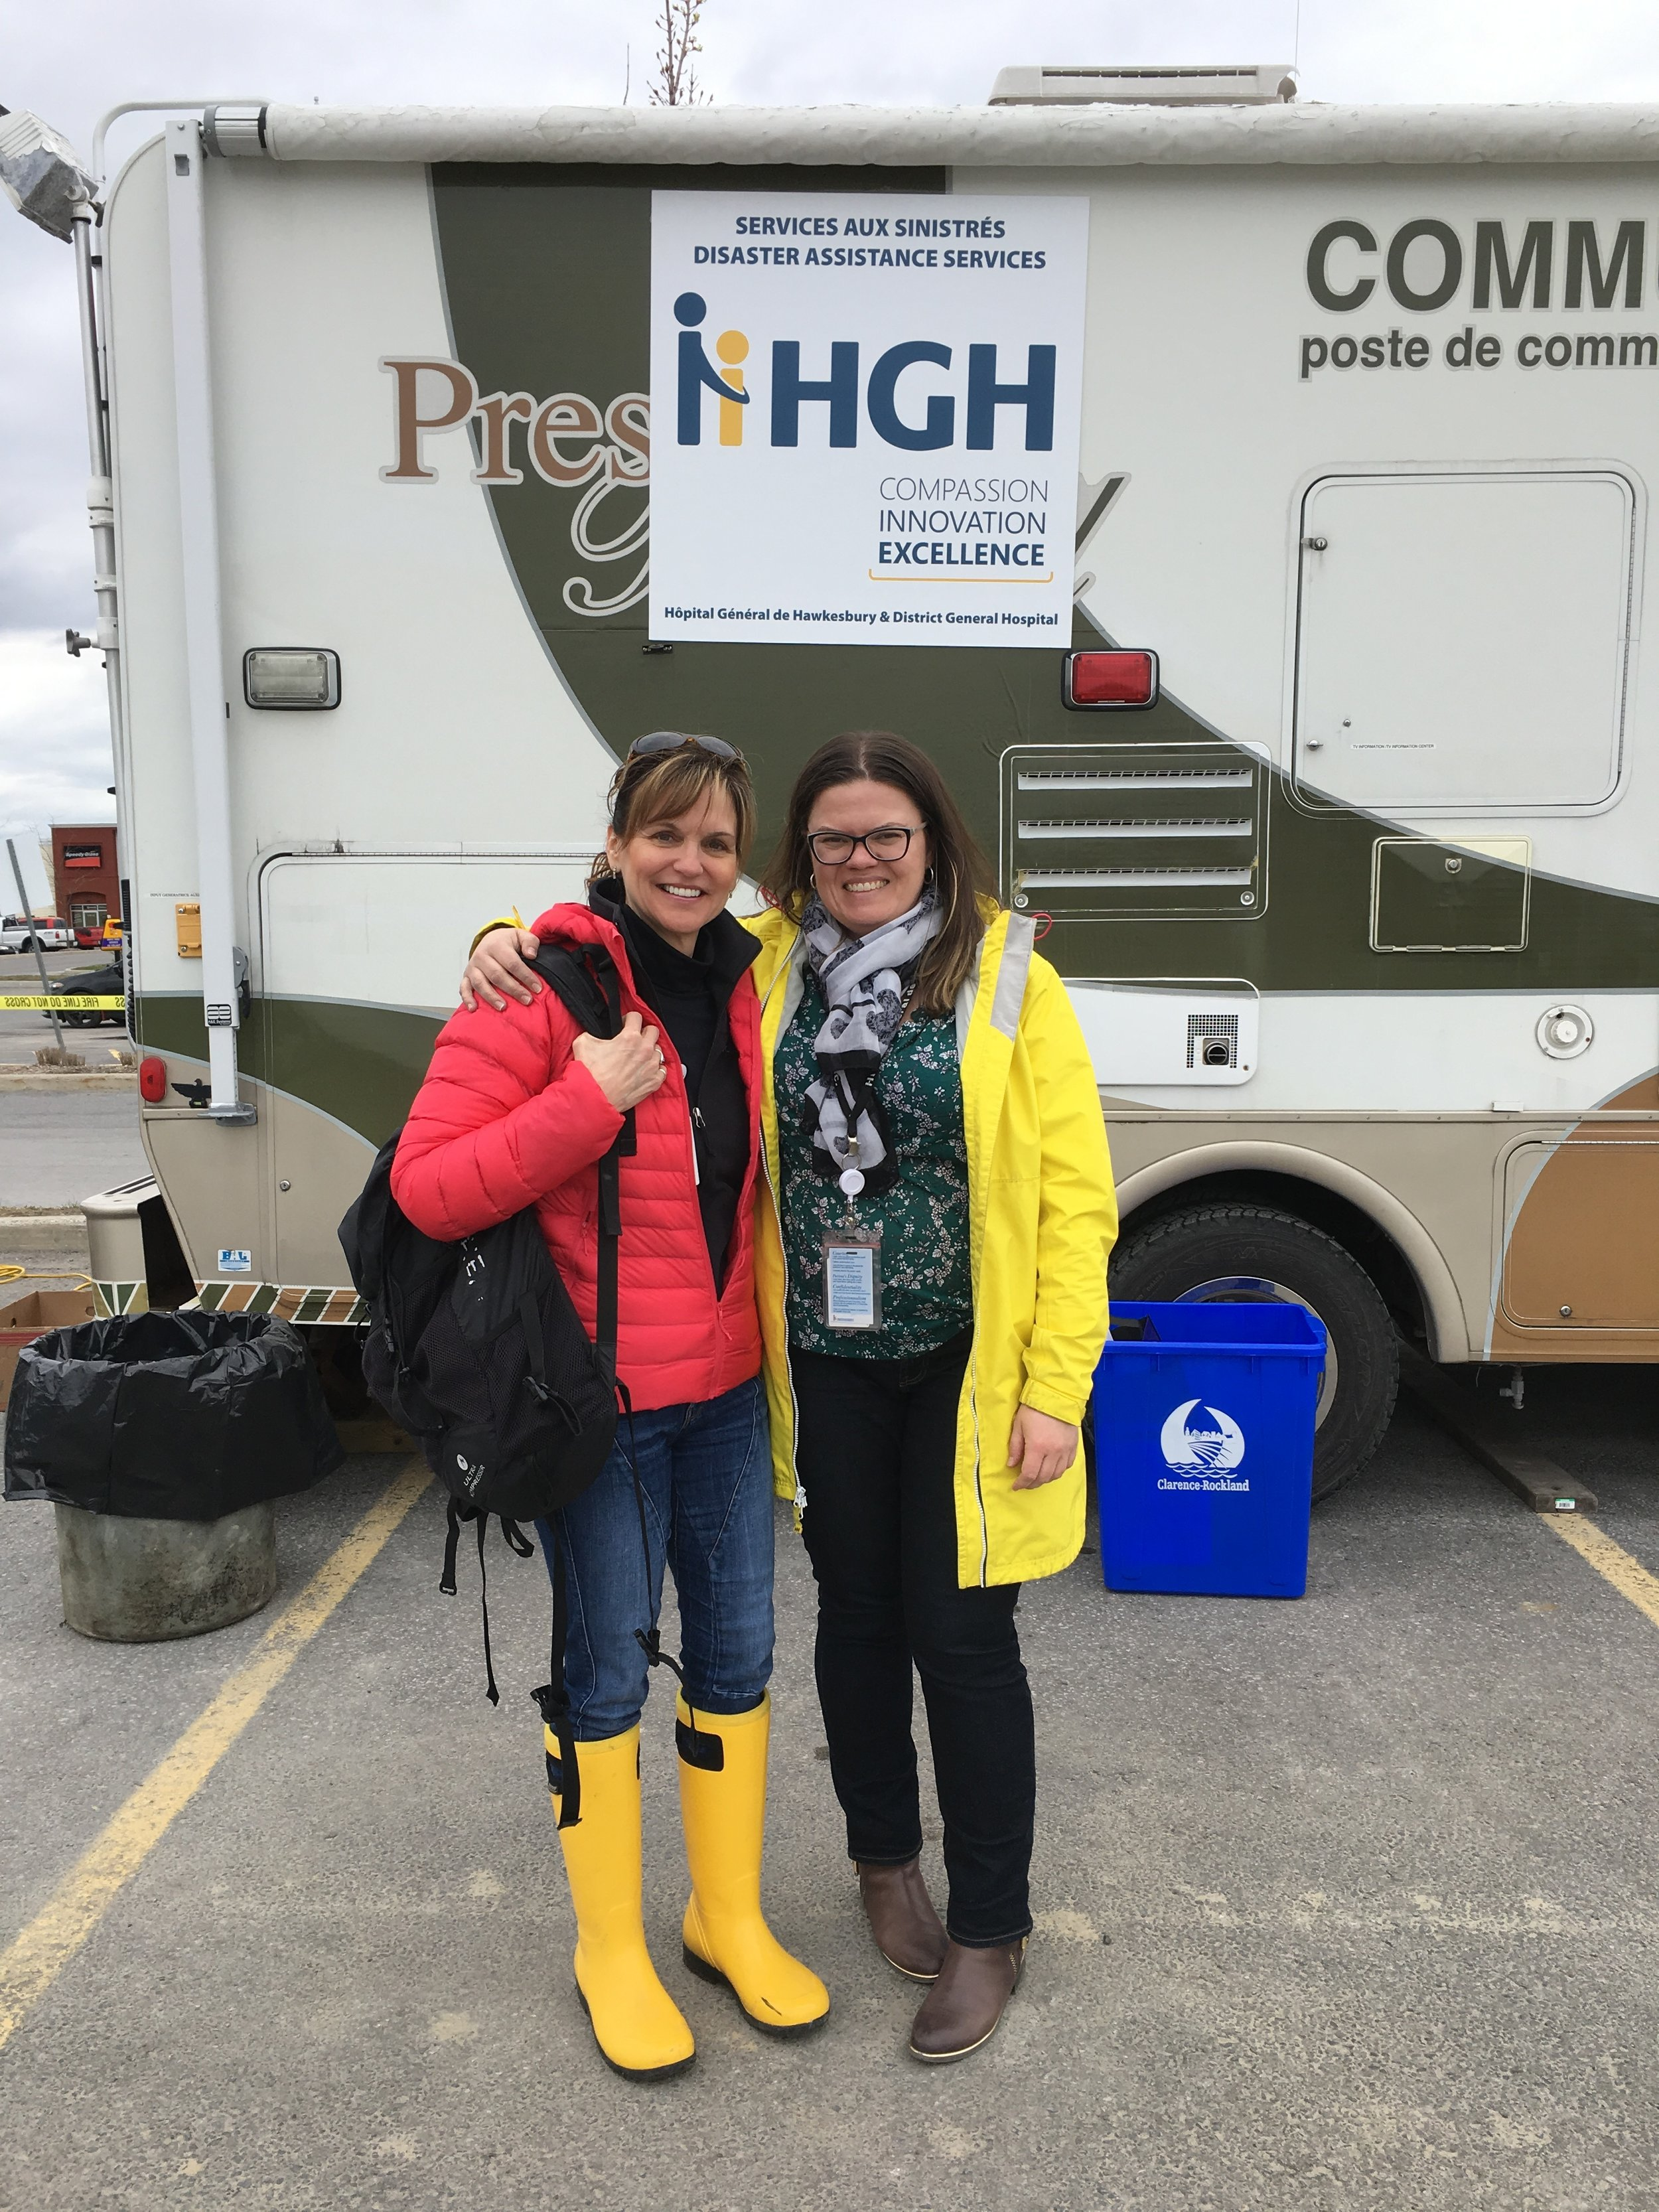 Dr. Filion (in red) with Tina from the CRISIS SERVICE OF THE HAWKESBURY AND DISTRICT GENERAL HOSPITAL.  Dr. Filion is going door-to-door, providing prevention and intervention mental health services to the victims.